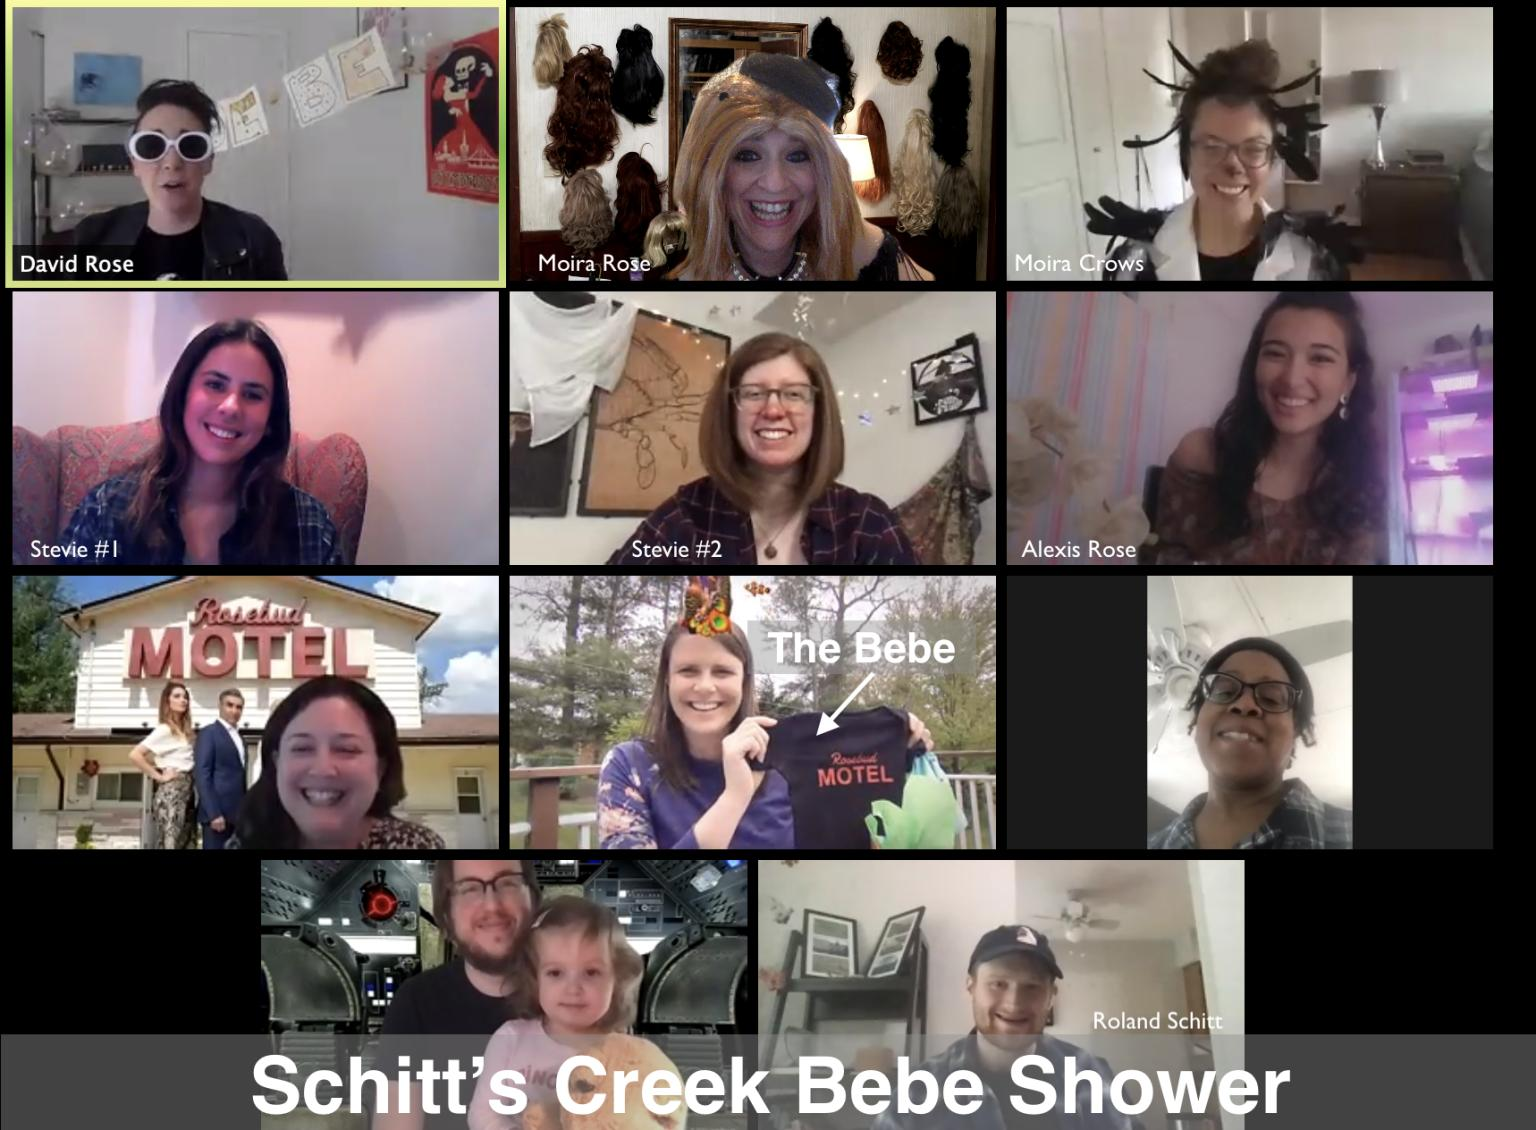 schitts creek bebe